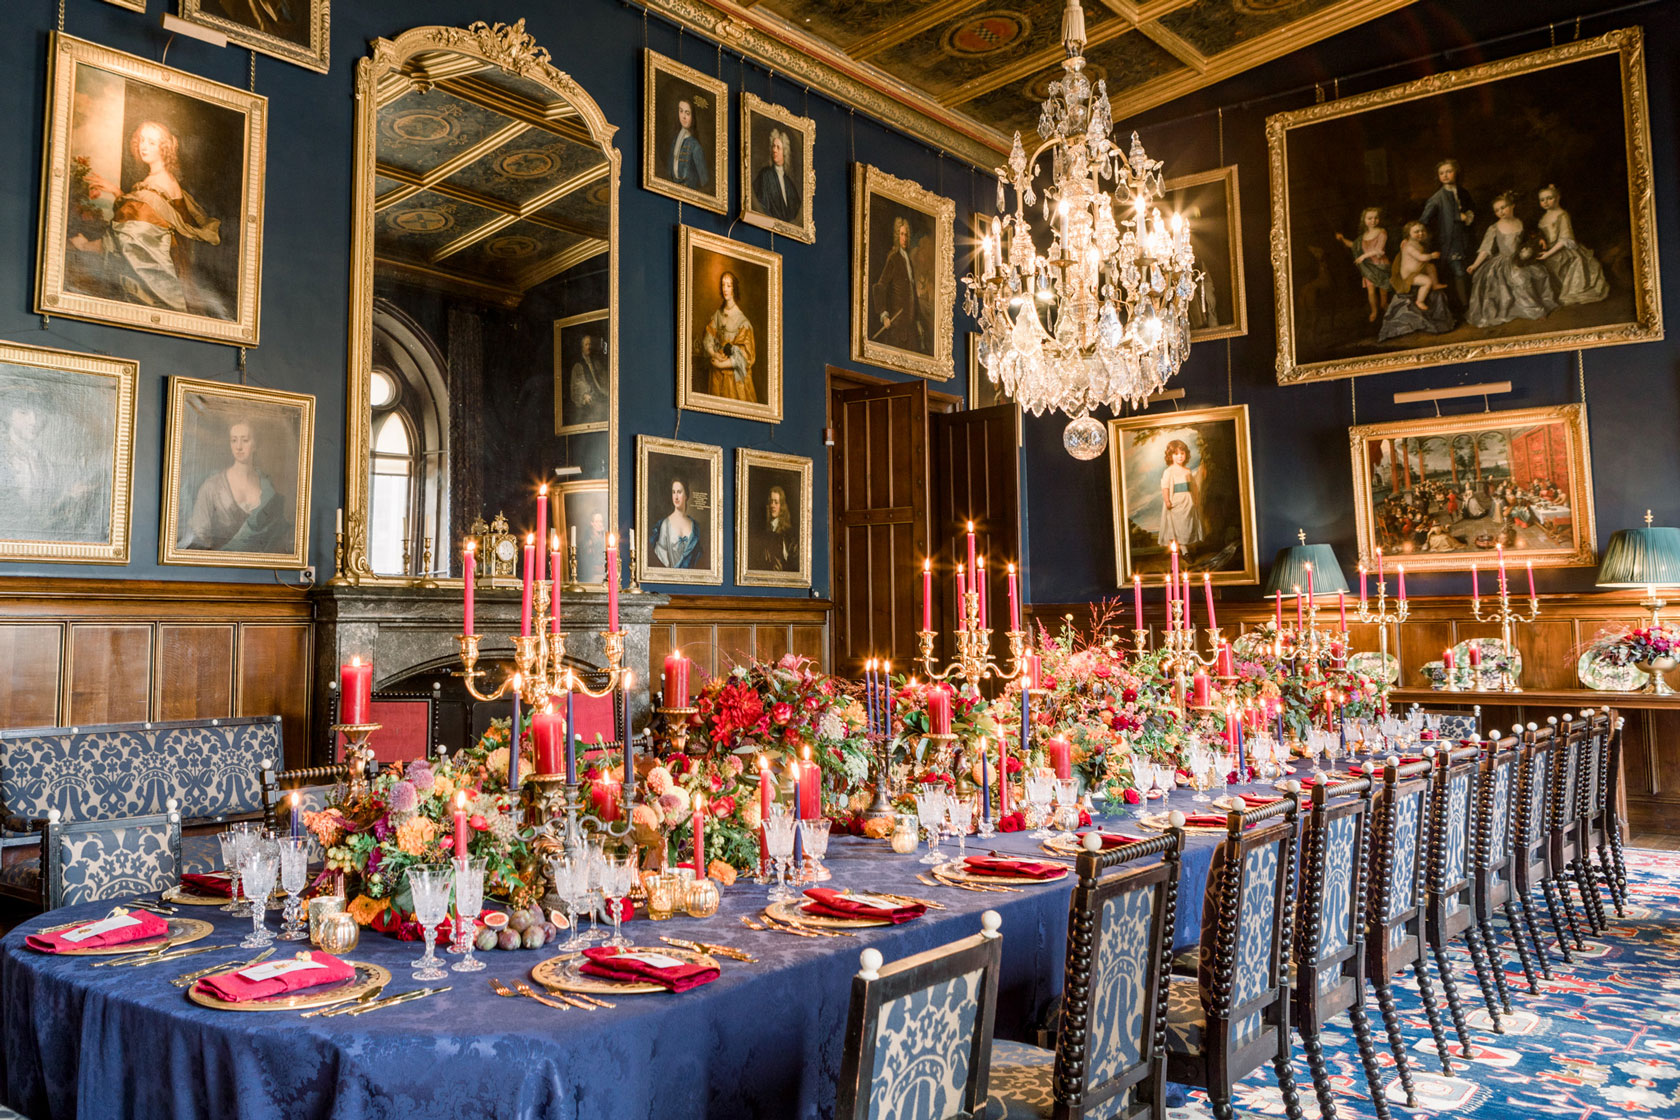 navy and gold regal inspired castle wedding breakfast banquet with hundreds of candles, gold chalices of flowers inside a castle